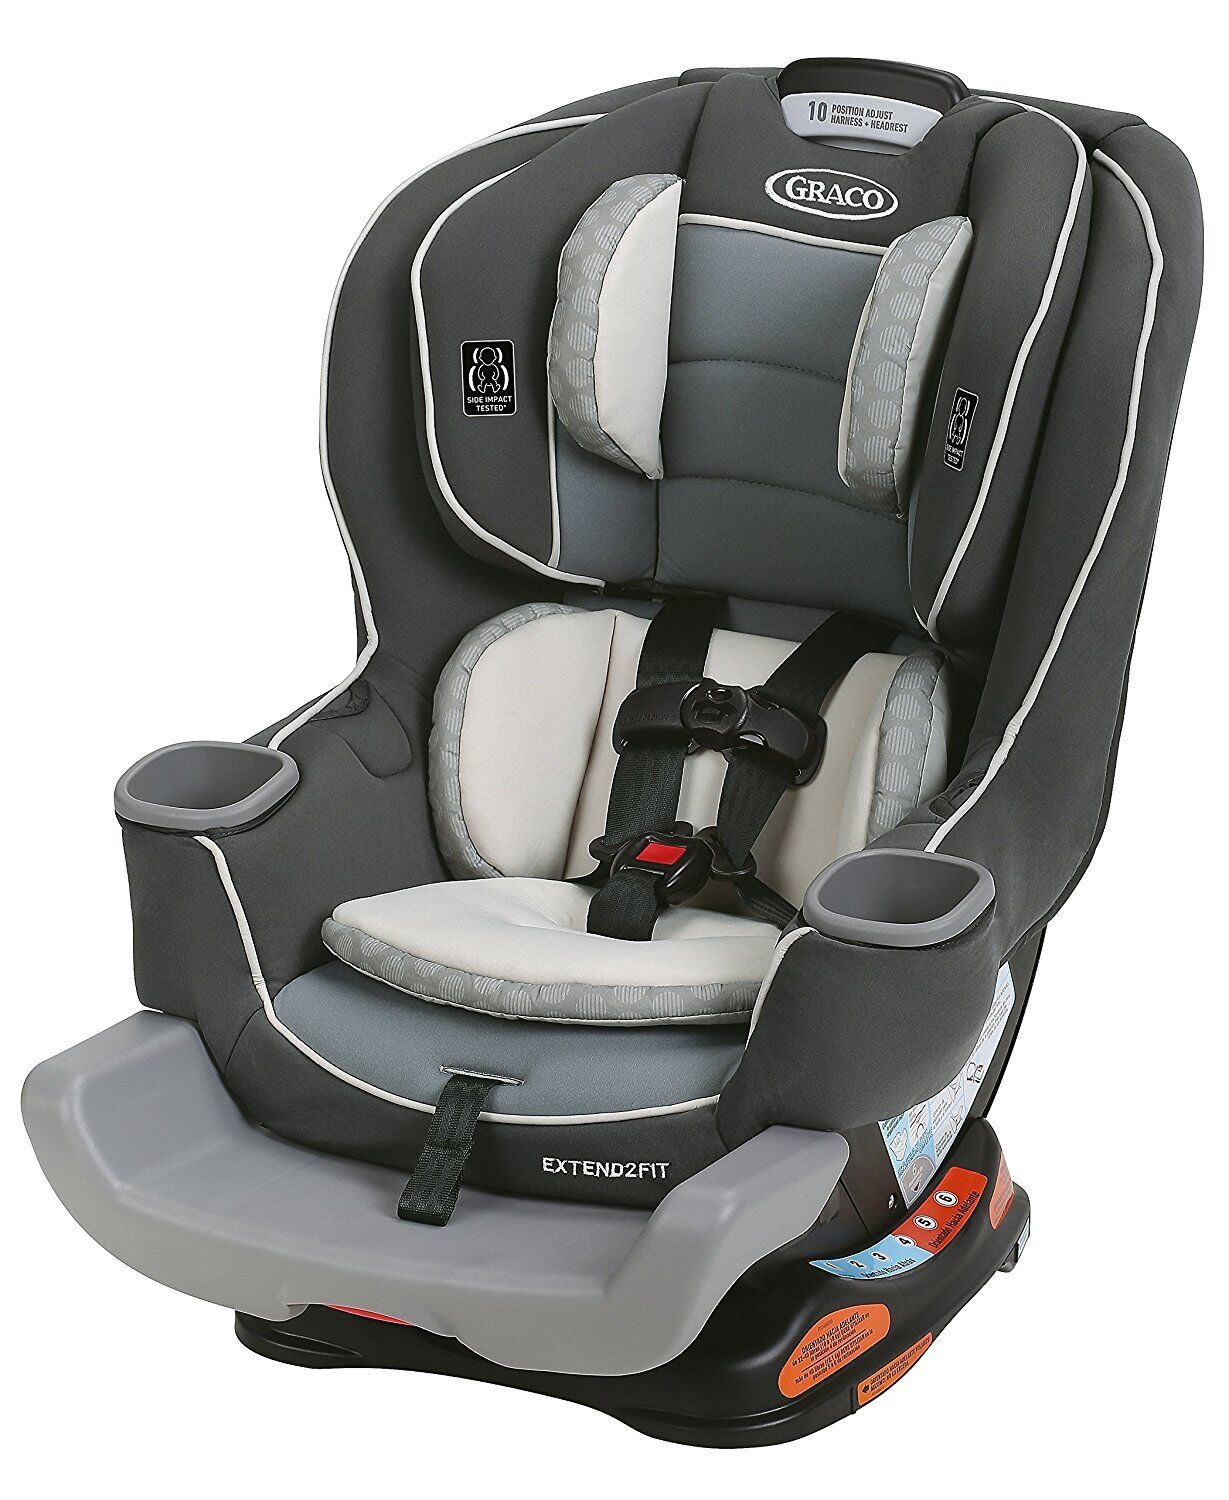 Купить Graco Extend2Fit - Graco Baby Extend2Fit Convertible Car Seat Infant Child Safety Davis NEW